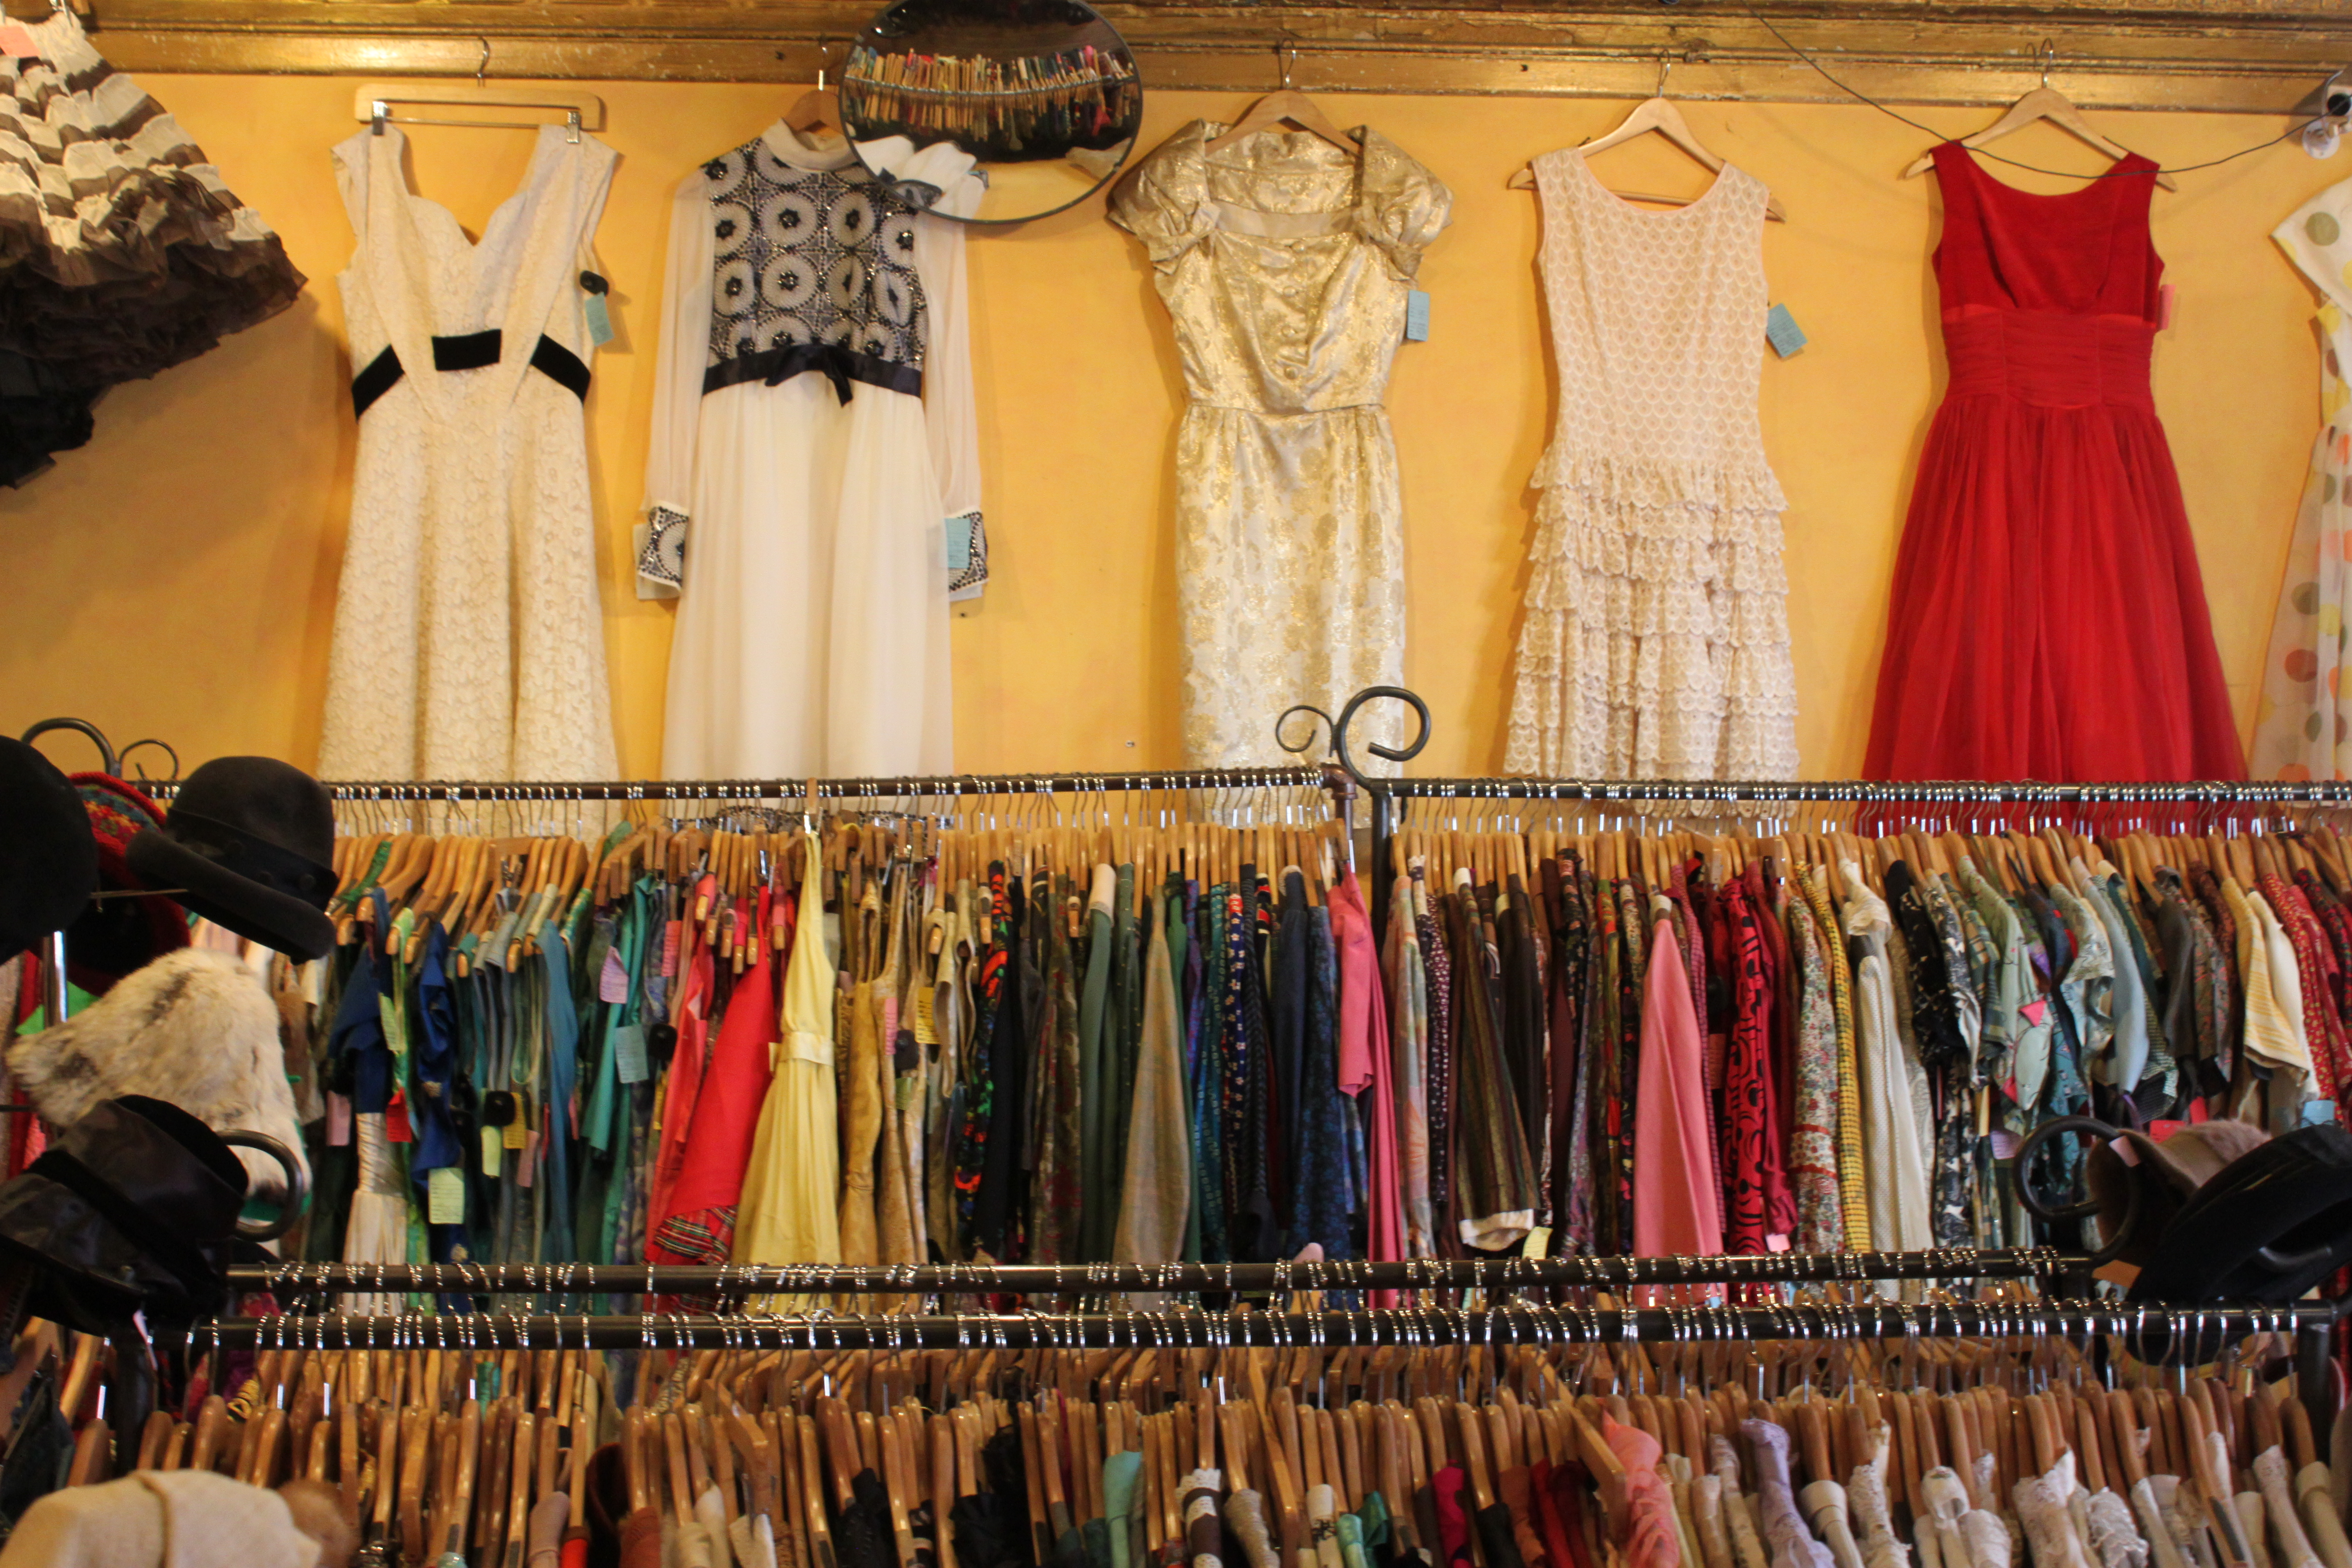 Best thrift stores in dallas for clothes